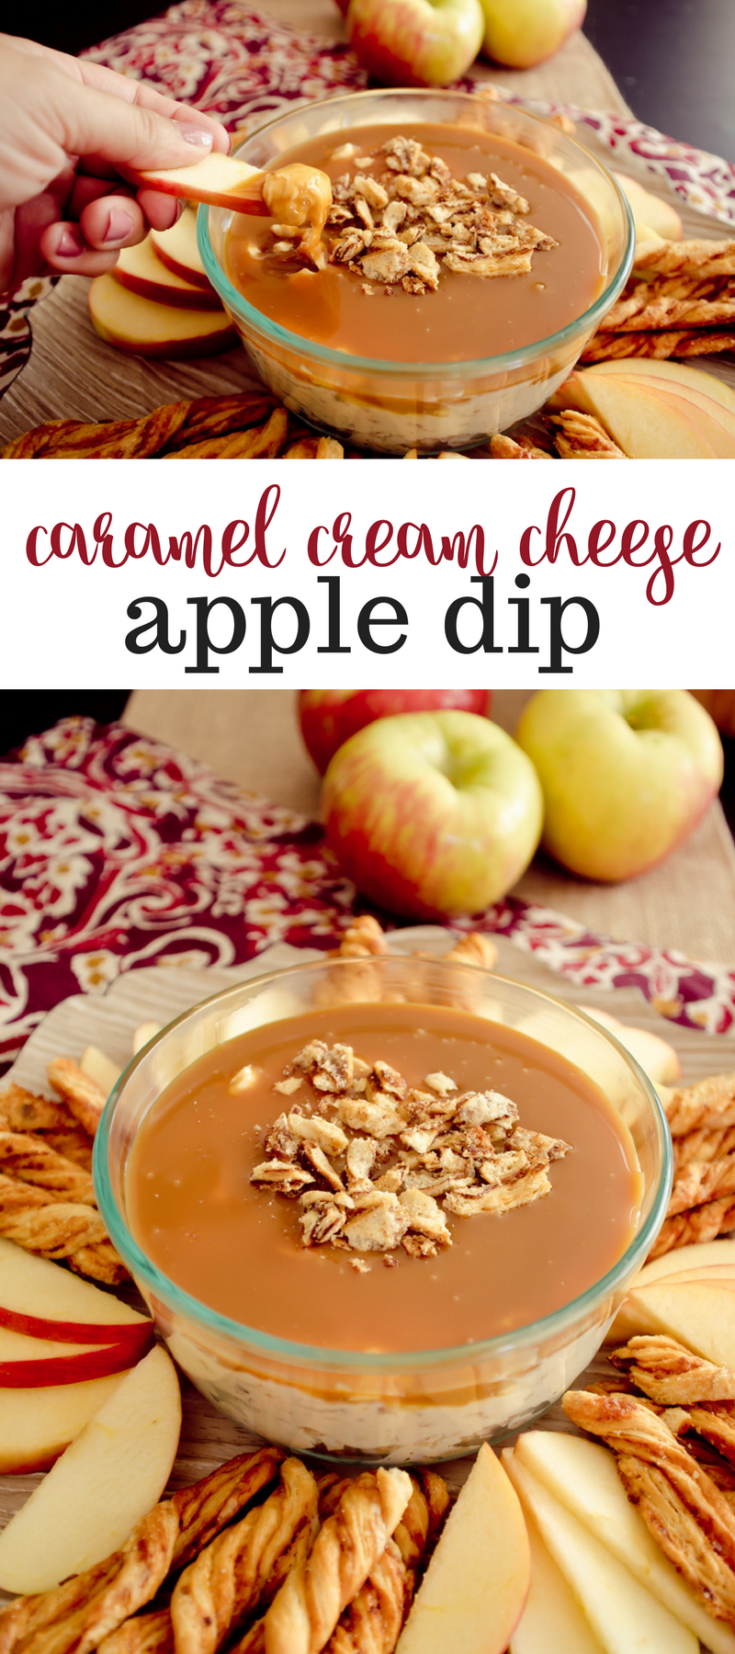 Make this easyCaramel Cream CheeseApple Dip for your next tailgating event or special occasion.